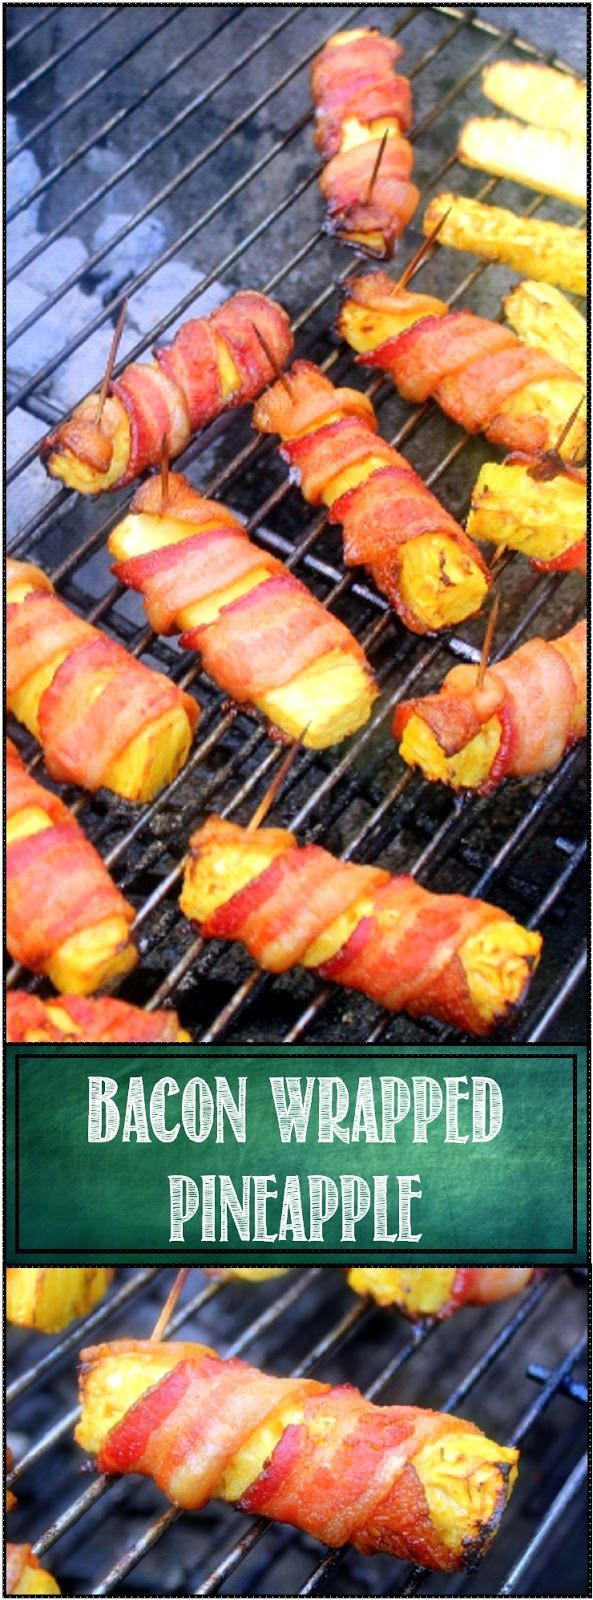 Bacon Wrapped Pineapple Baked in an Oven or Grilled ... These ARE  ABOUT AS GOOD AS IT GETS.  A wonderful party appetizer, really sets a tone for an outdoor event (tailgating anyone?).  Roll these out and you know something fun is going to happen.  The pineapple comes out warm and incredibly juicy and of course... BACON!  Tips for grilling or to bake in your oven.  ENJOY!